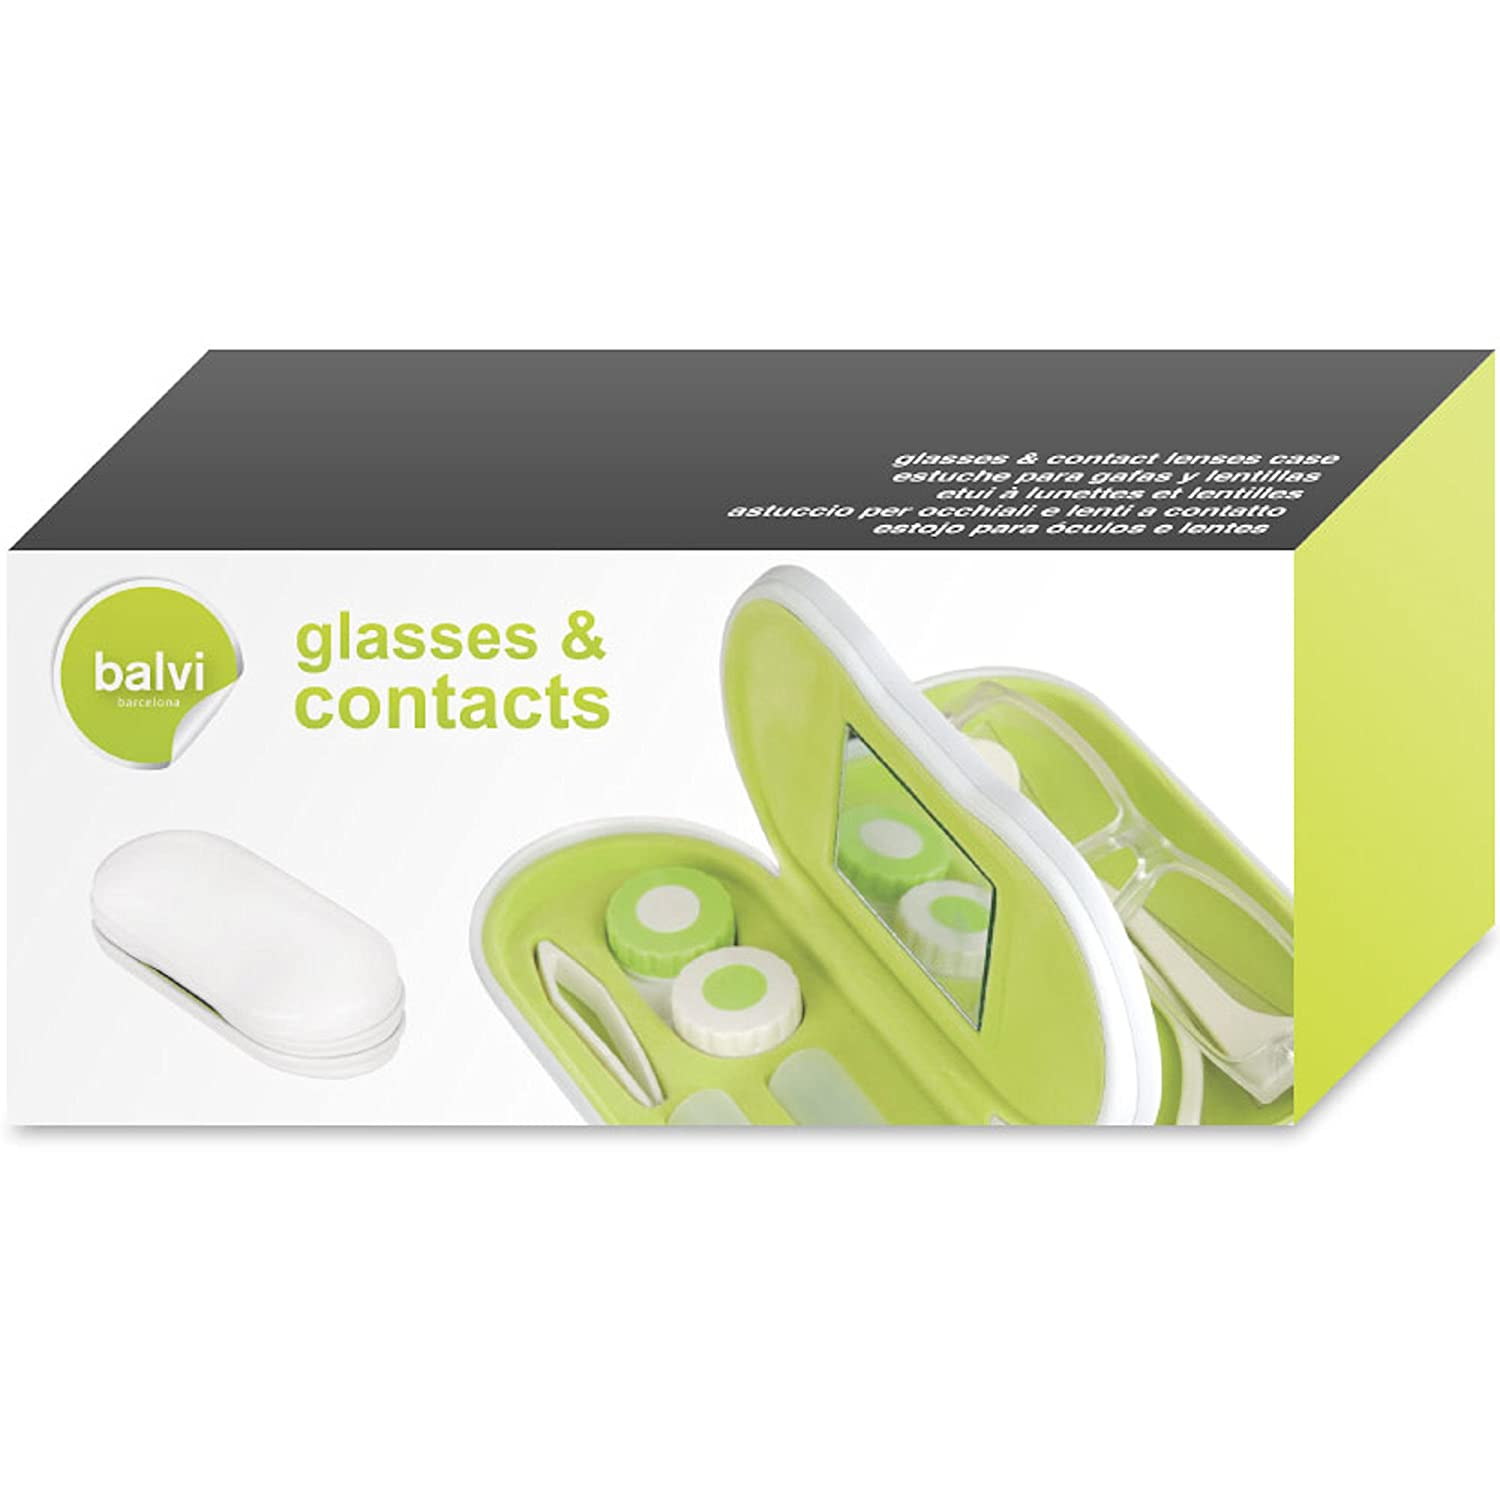 Balvi - Eyeglasses and contact lens case Twin white